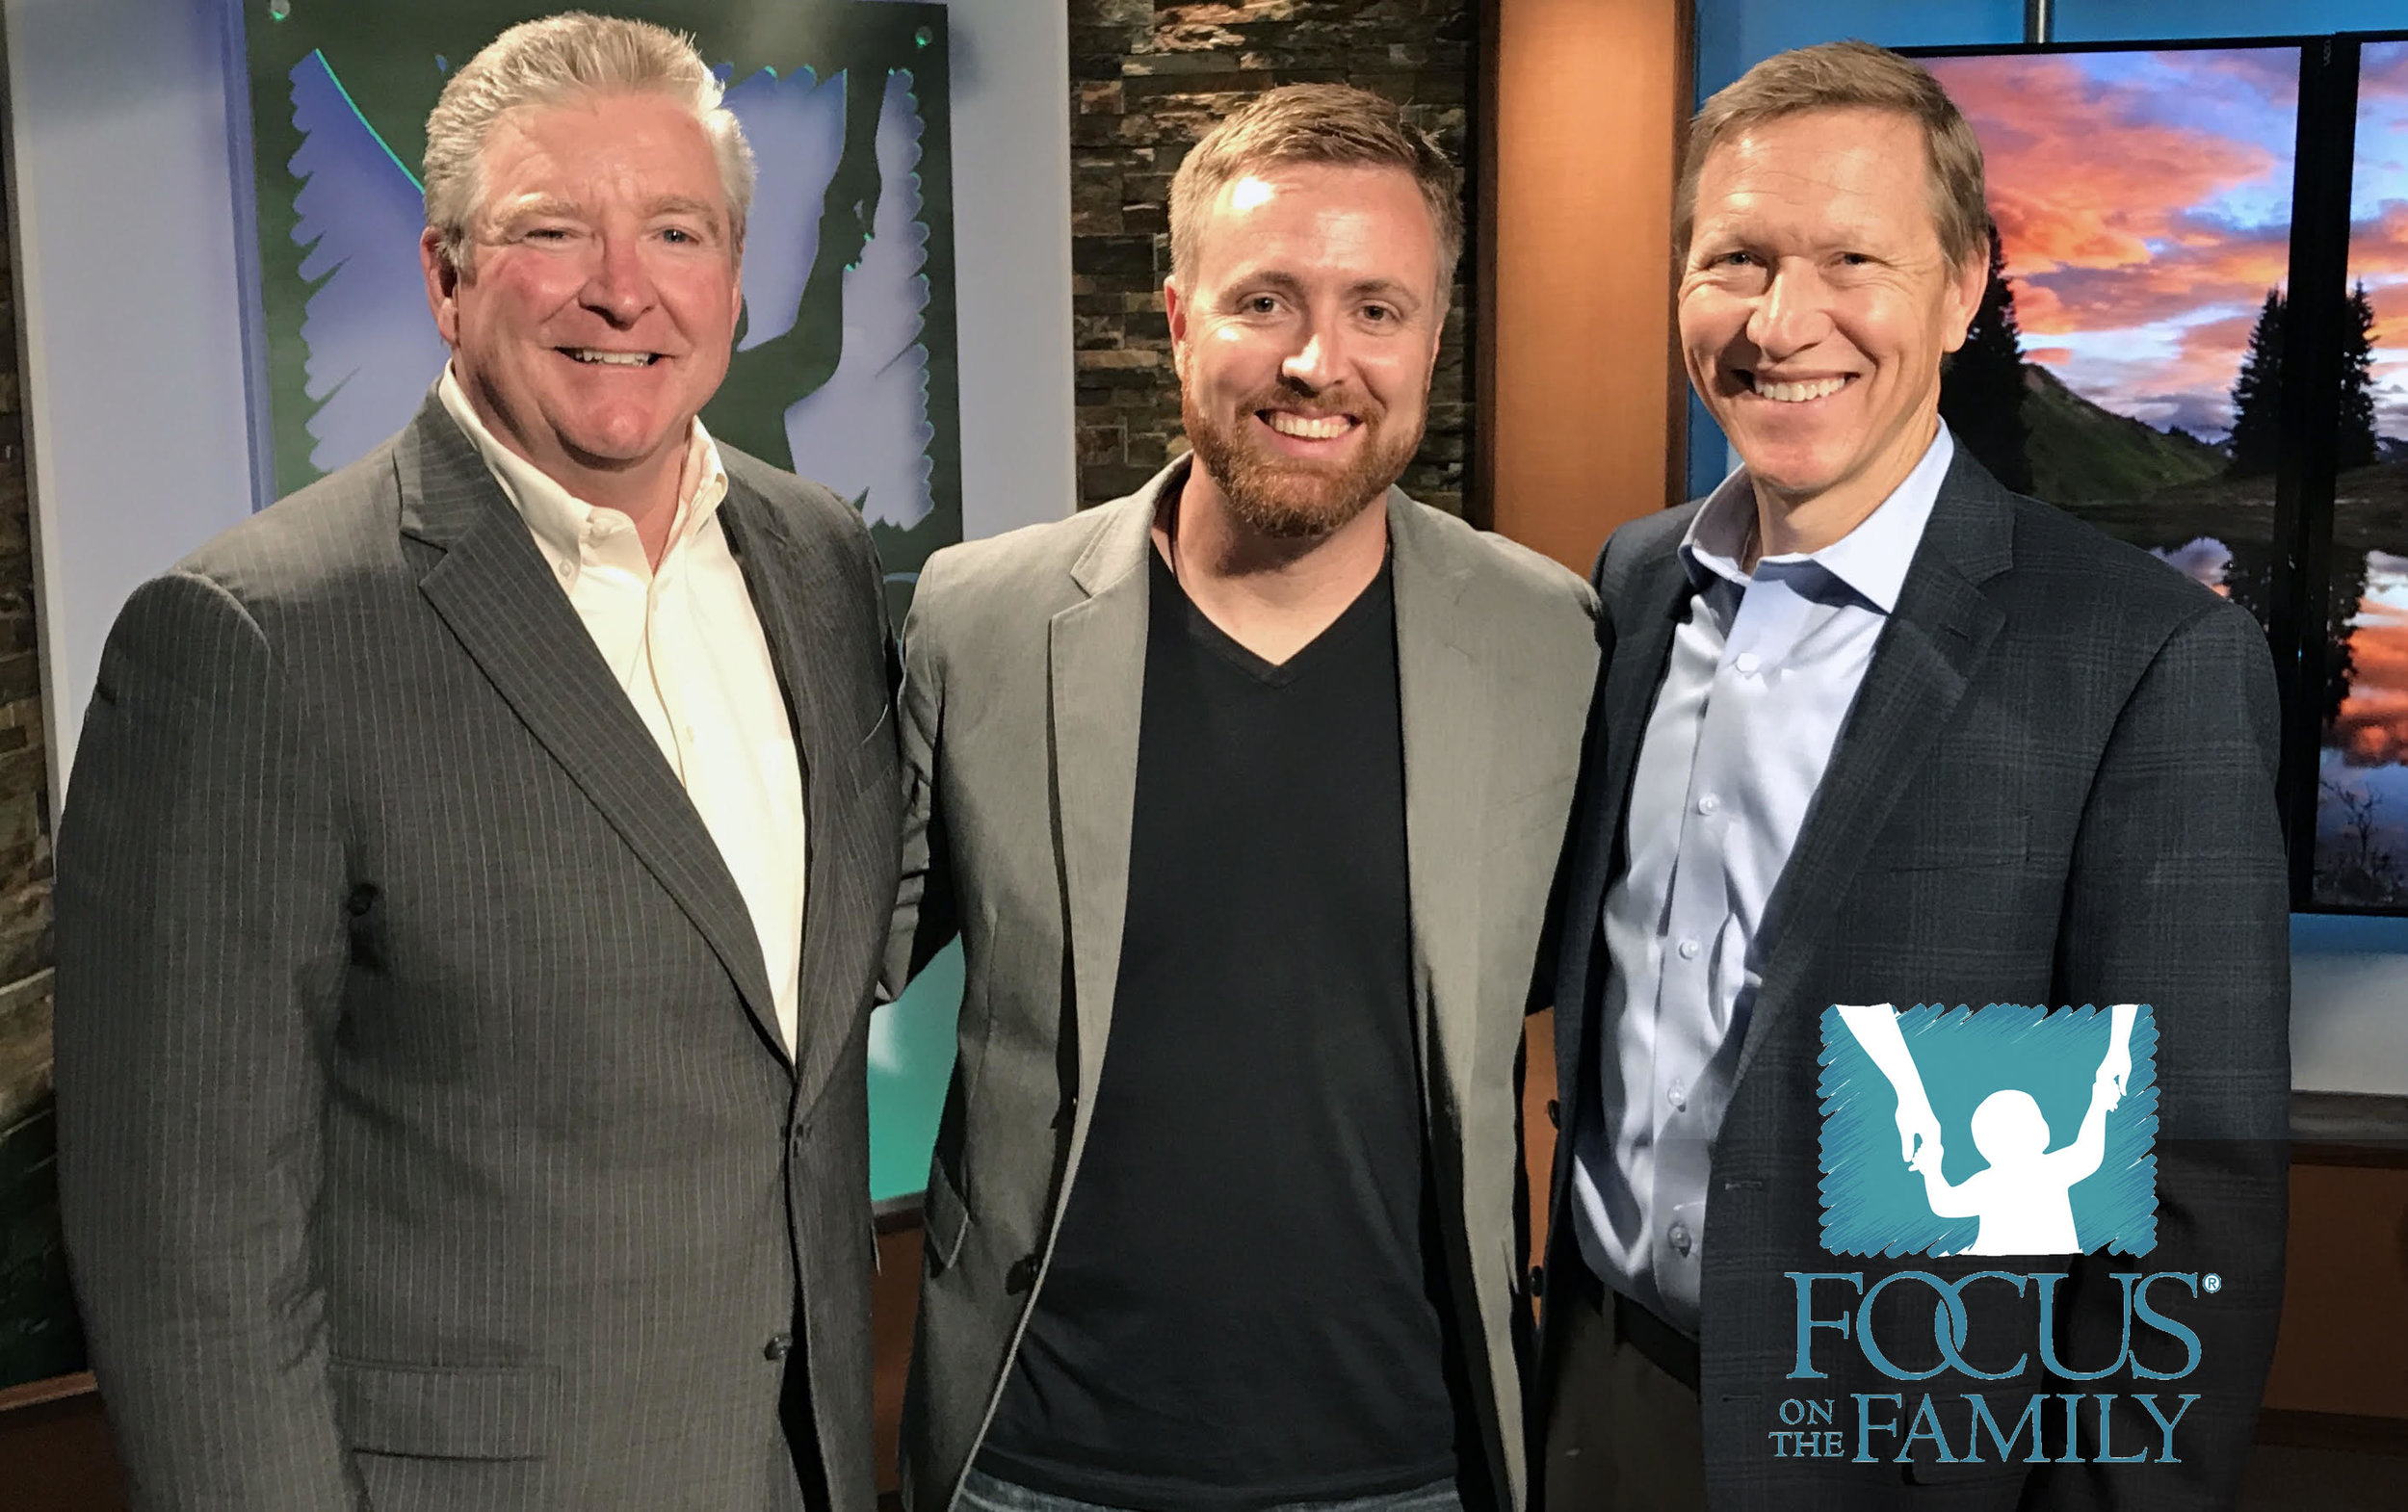 Tommy with Focus on the Family hosts Jim Daly and John Fuller.